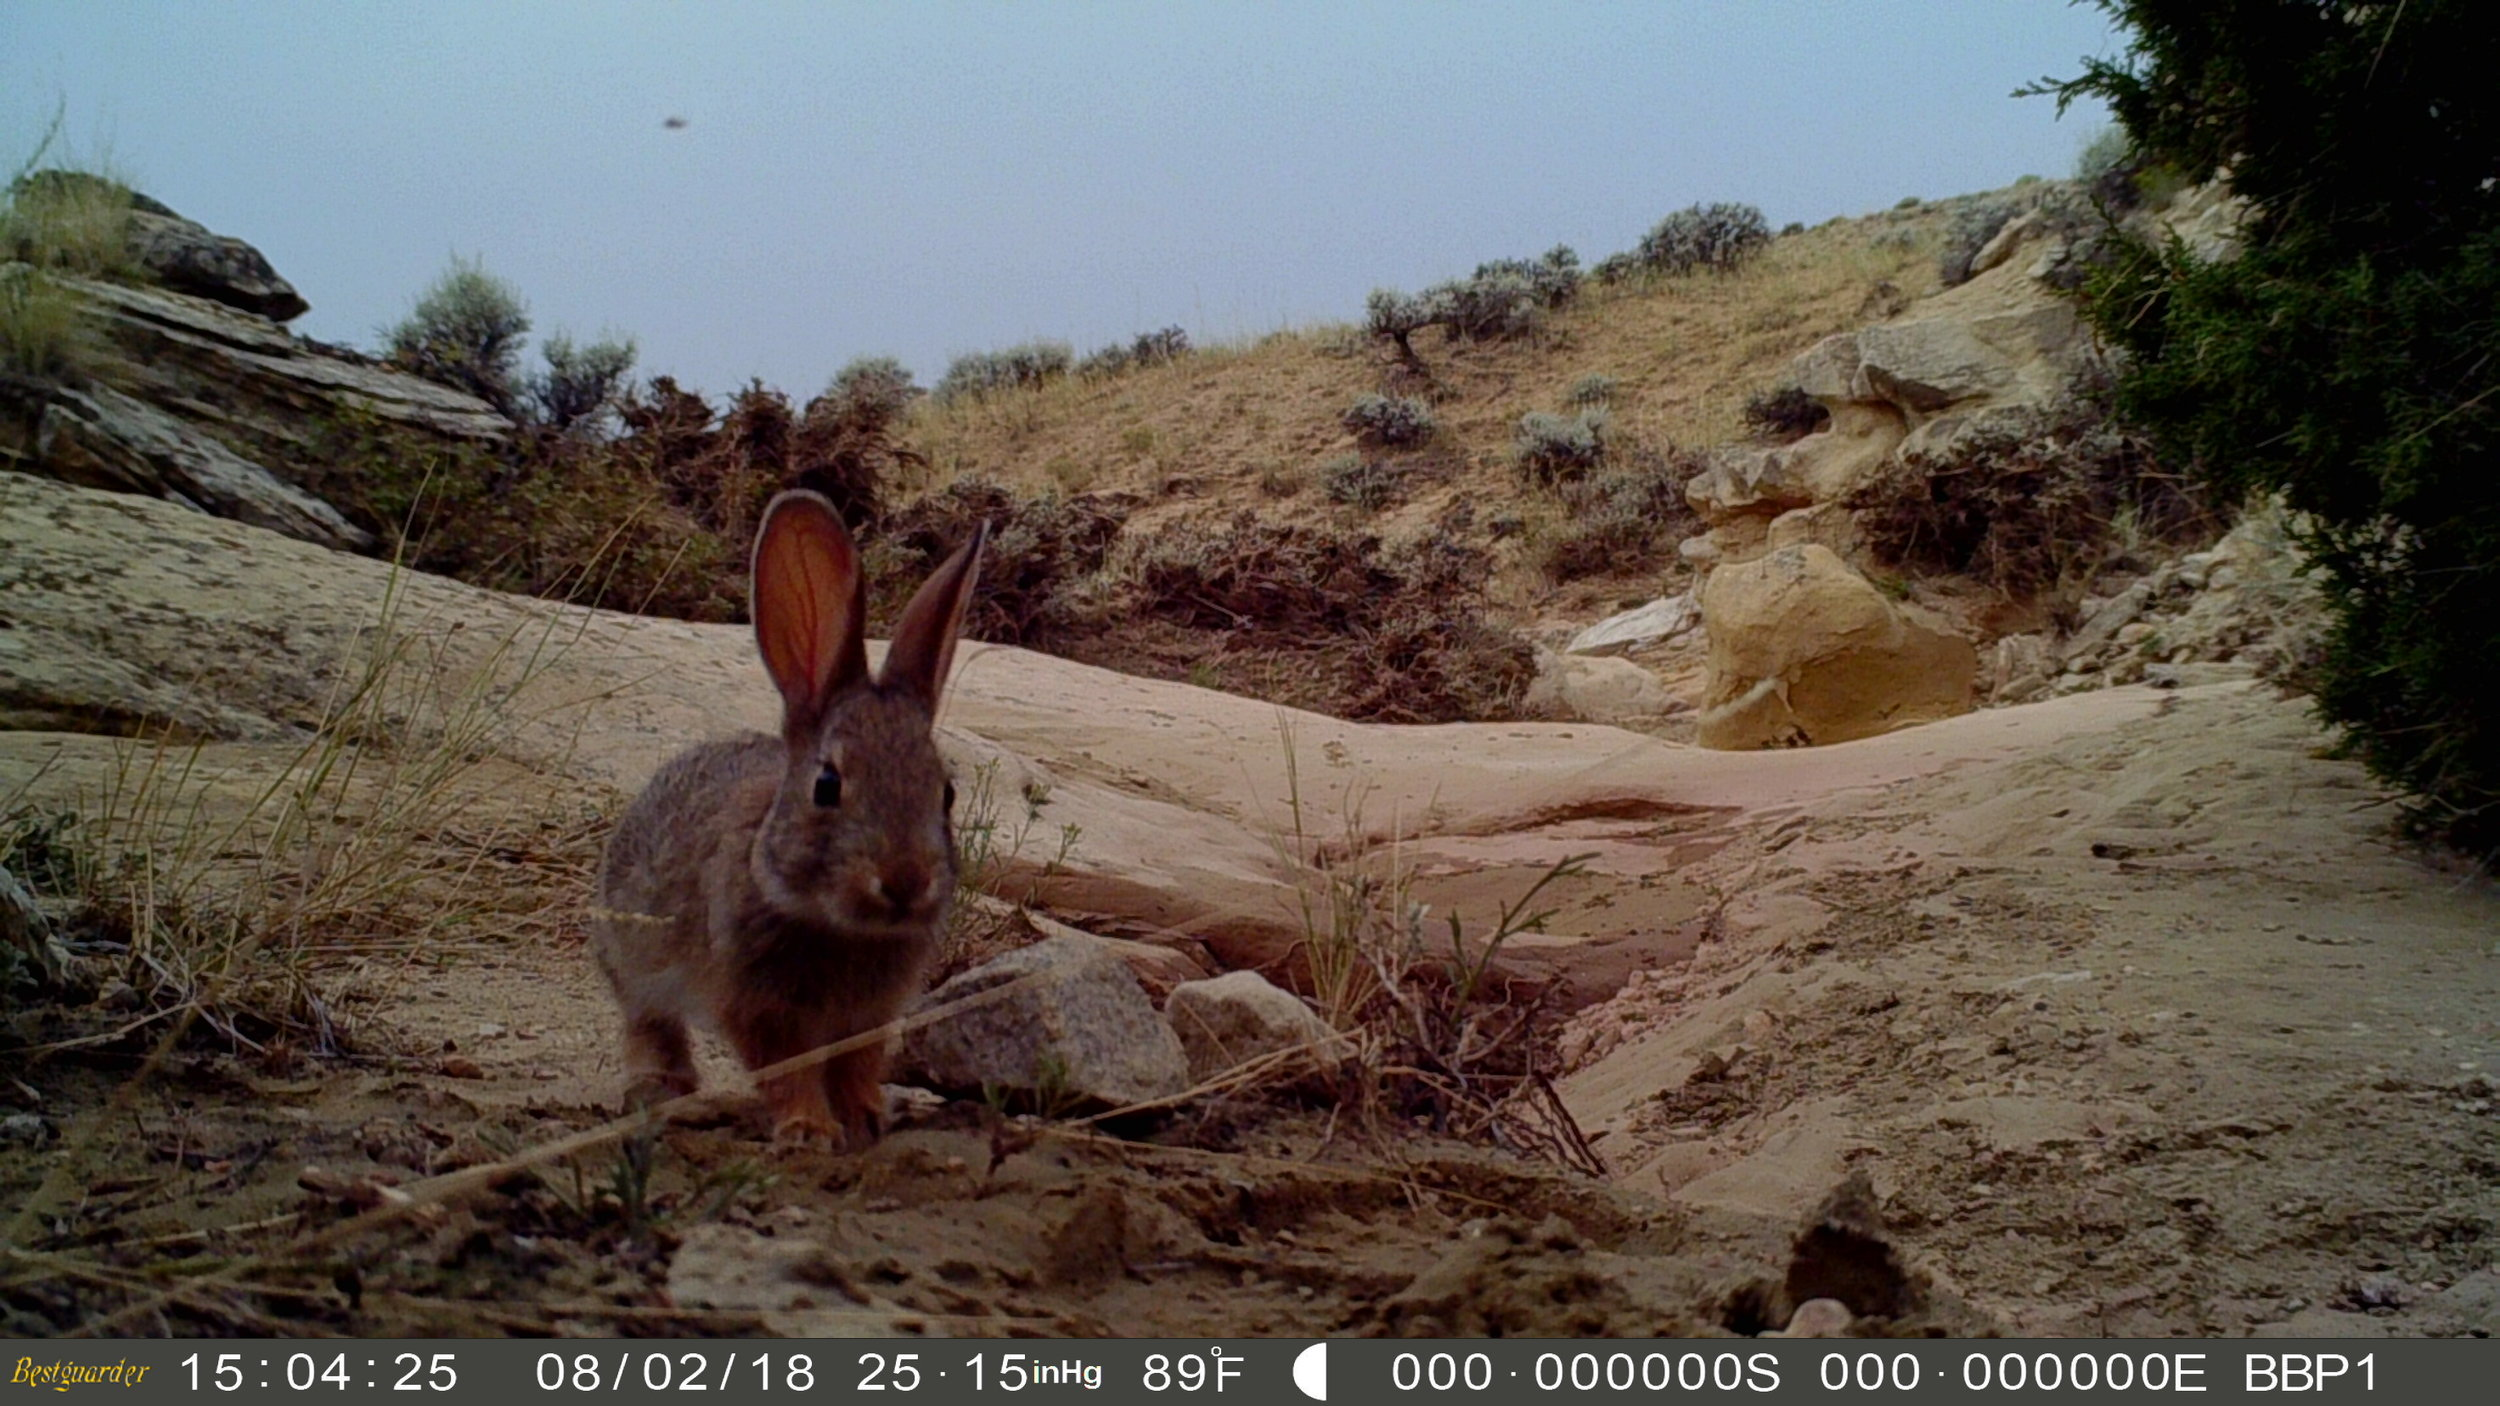 Image by BBPI Trail Cam